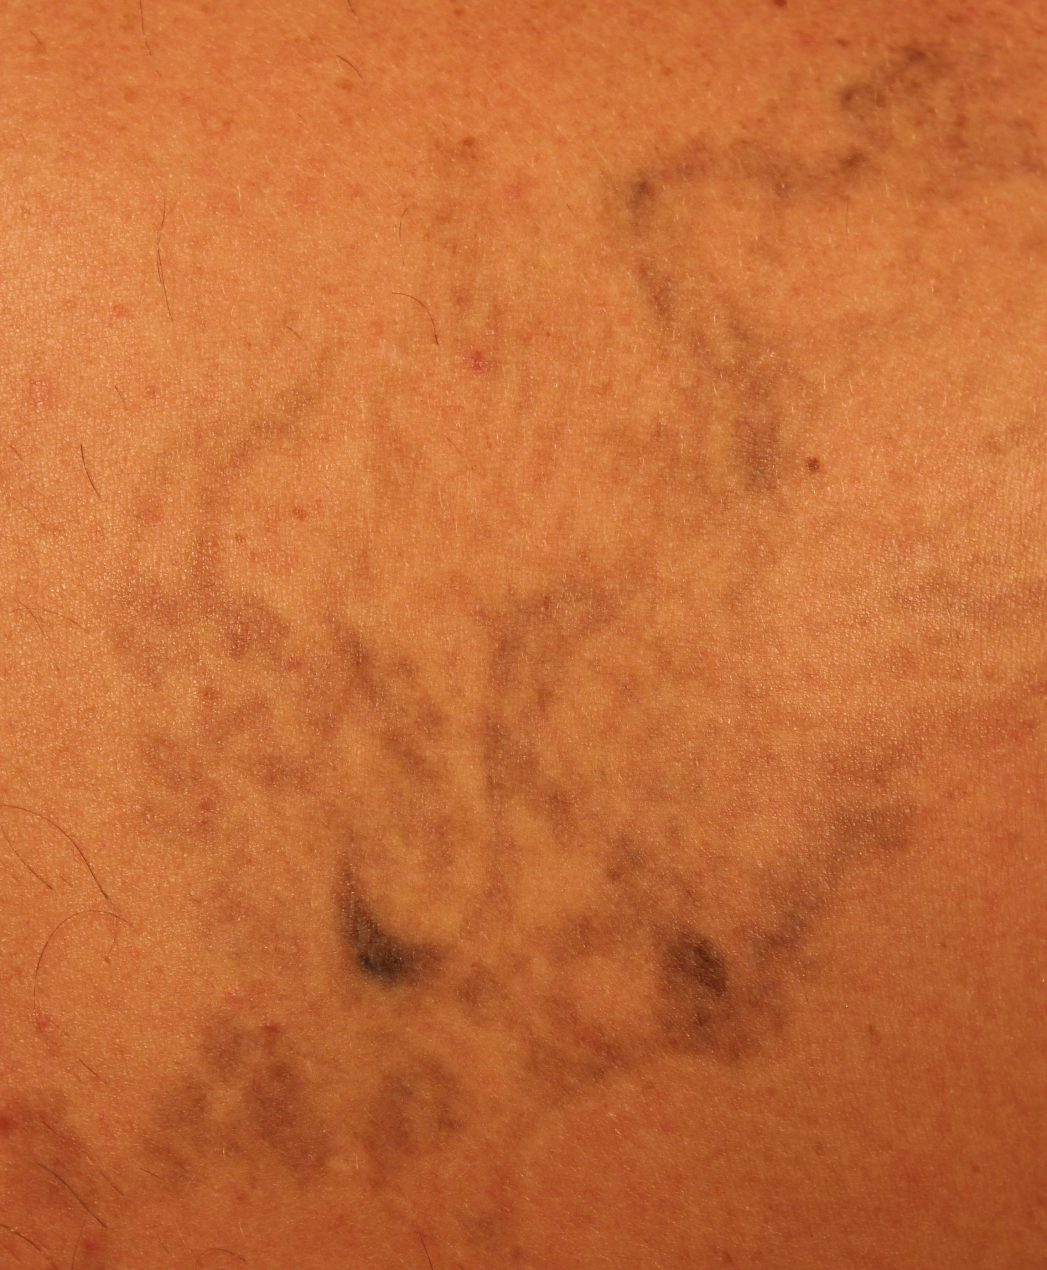 Laser Treatment For Stretch Marks Cost Yacht